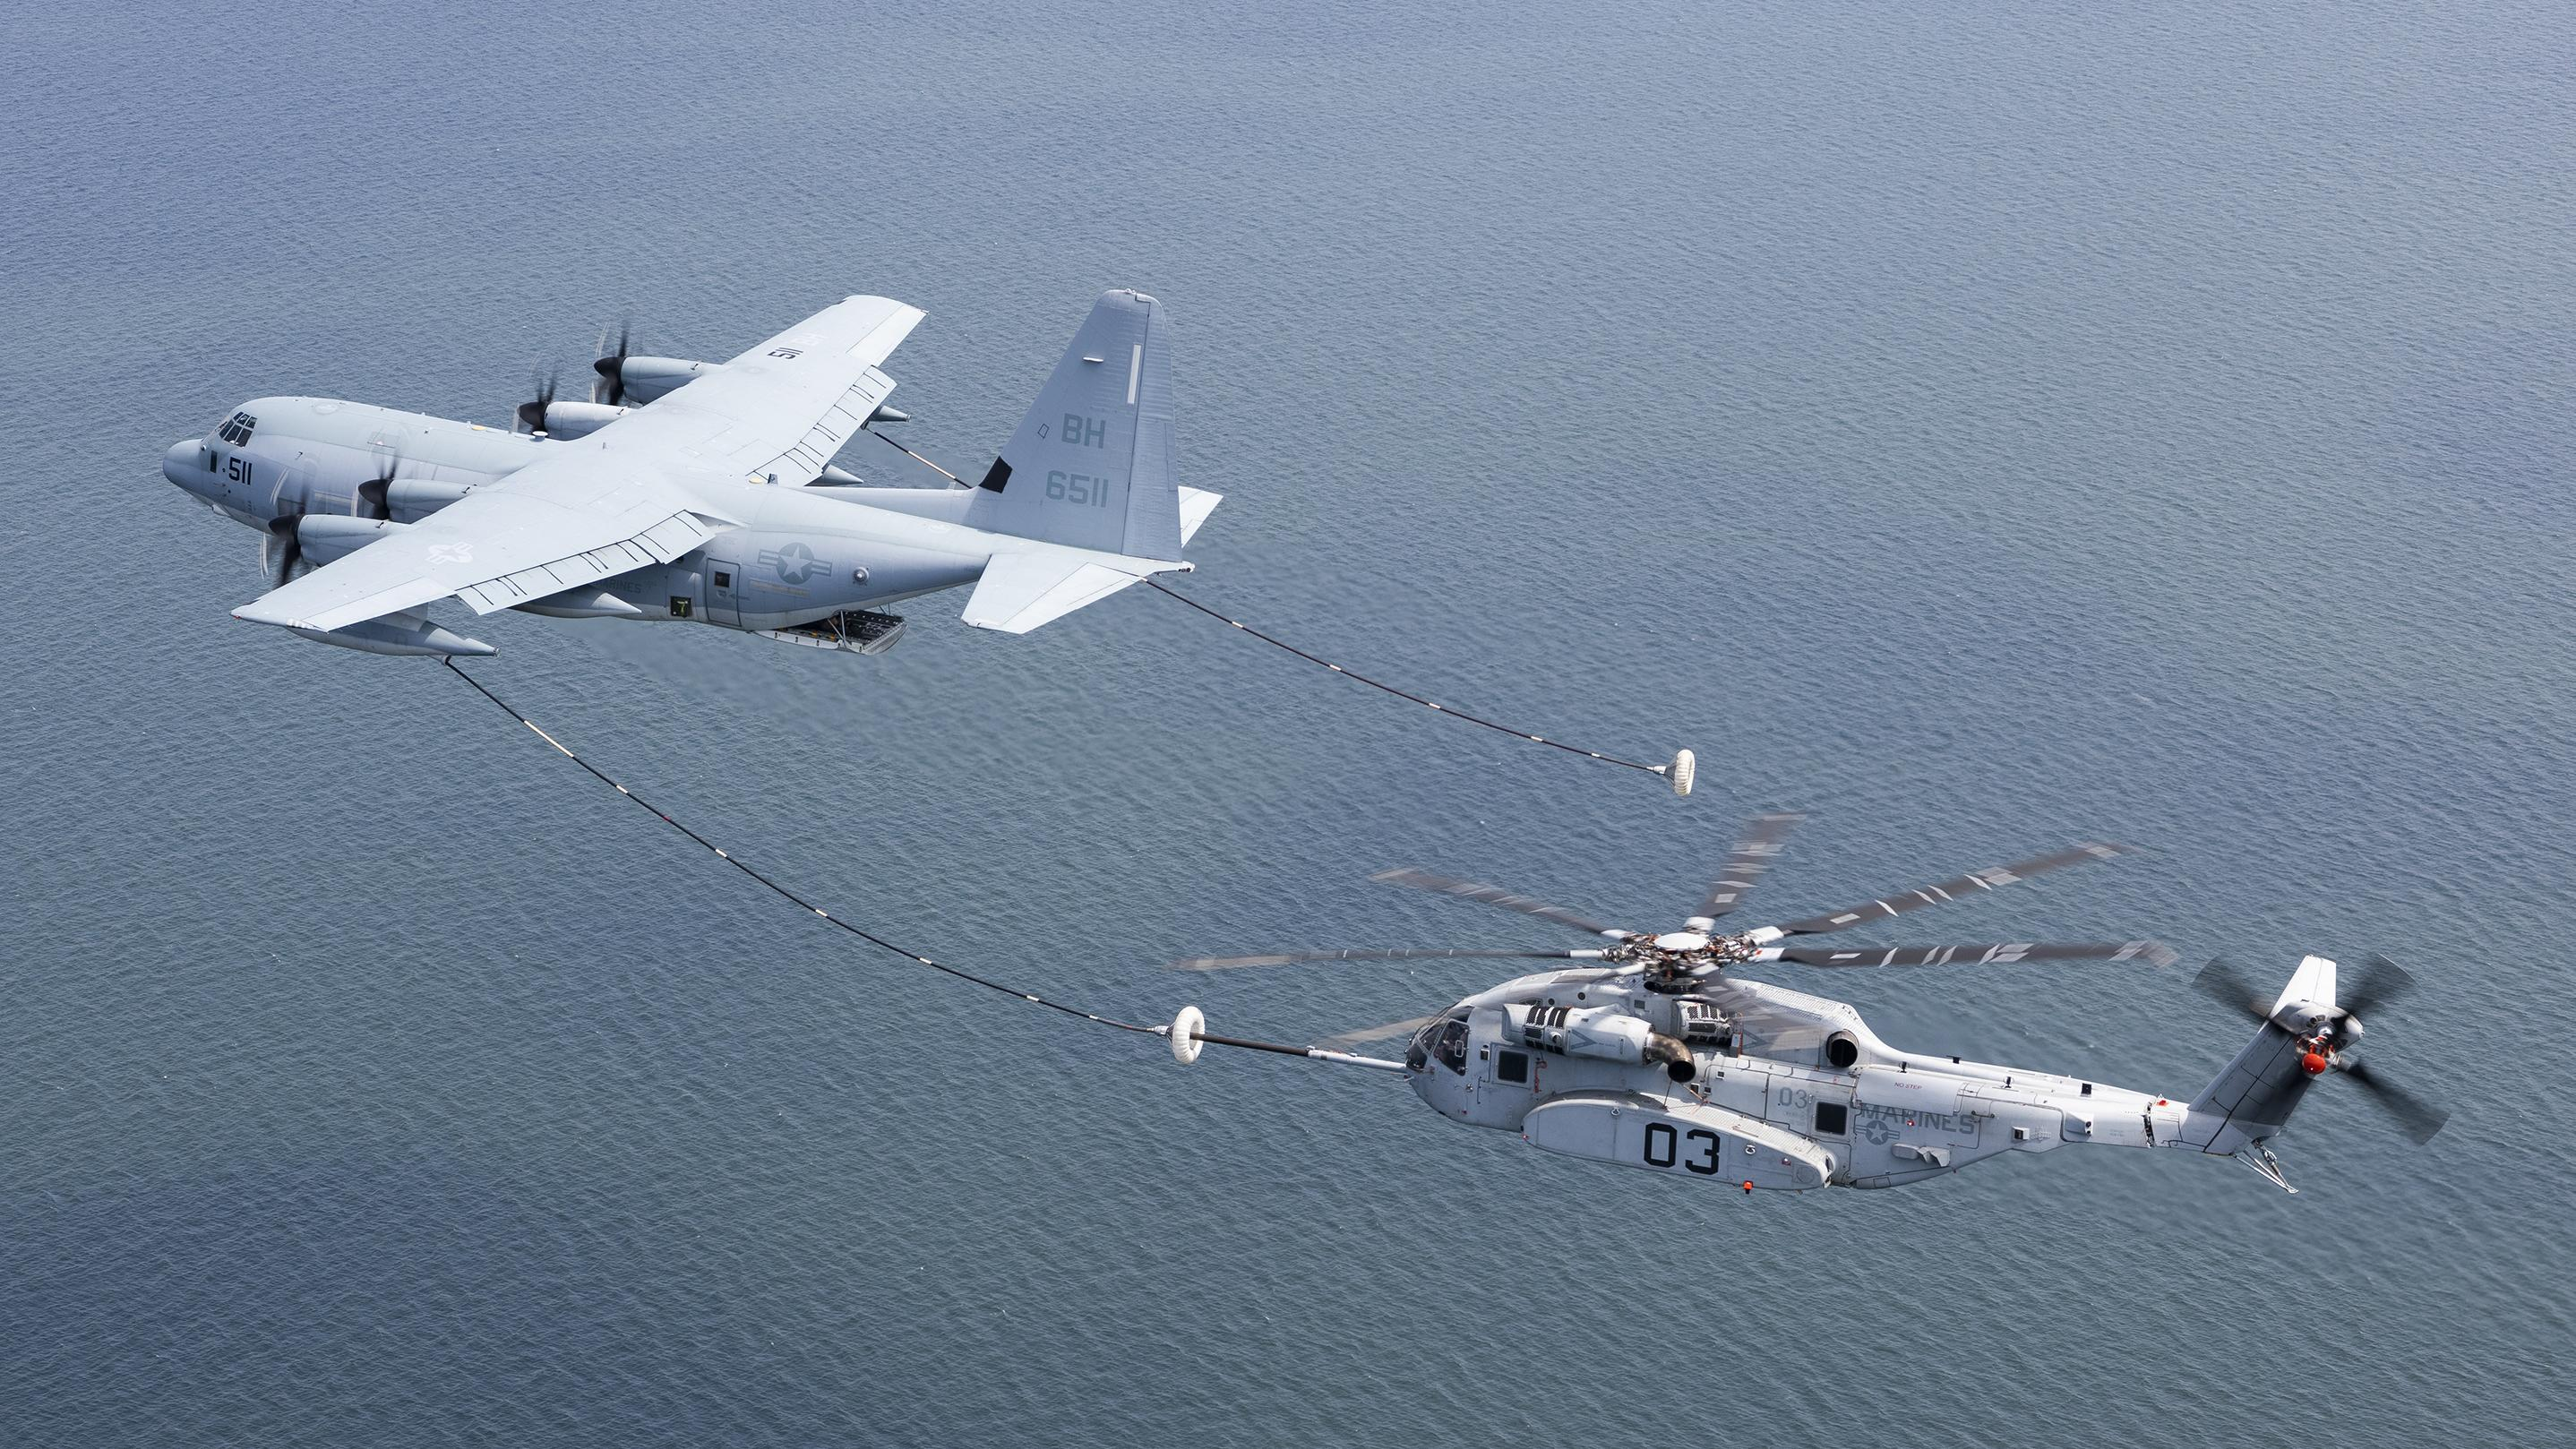 CH-53K tests air-to-air refuel with KC-130J